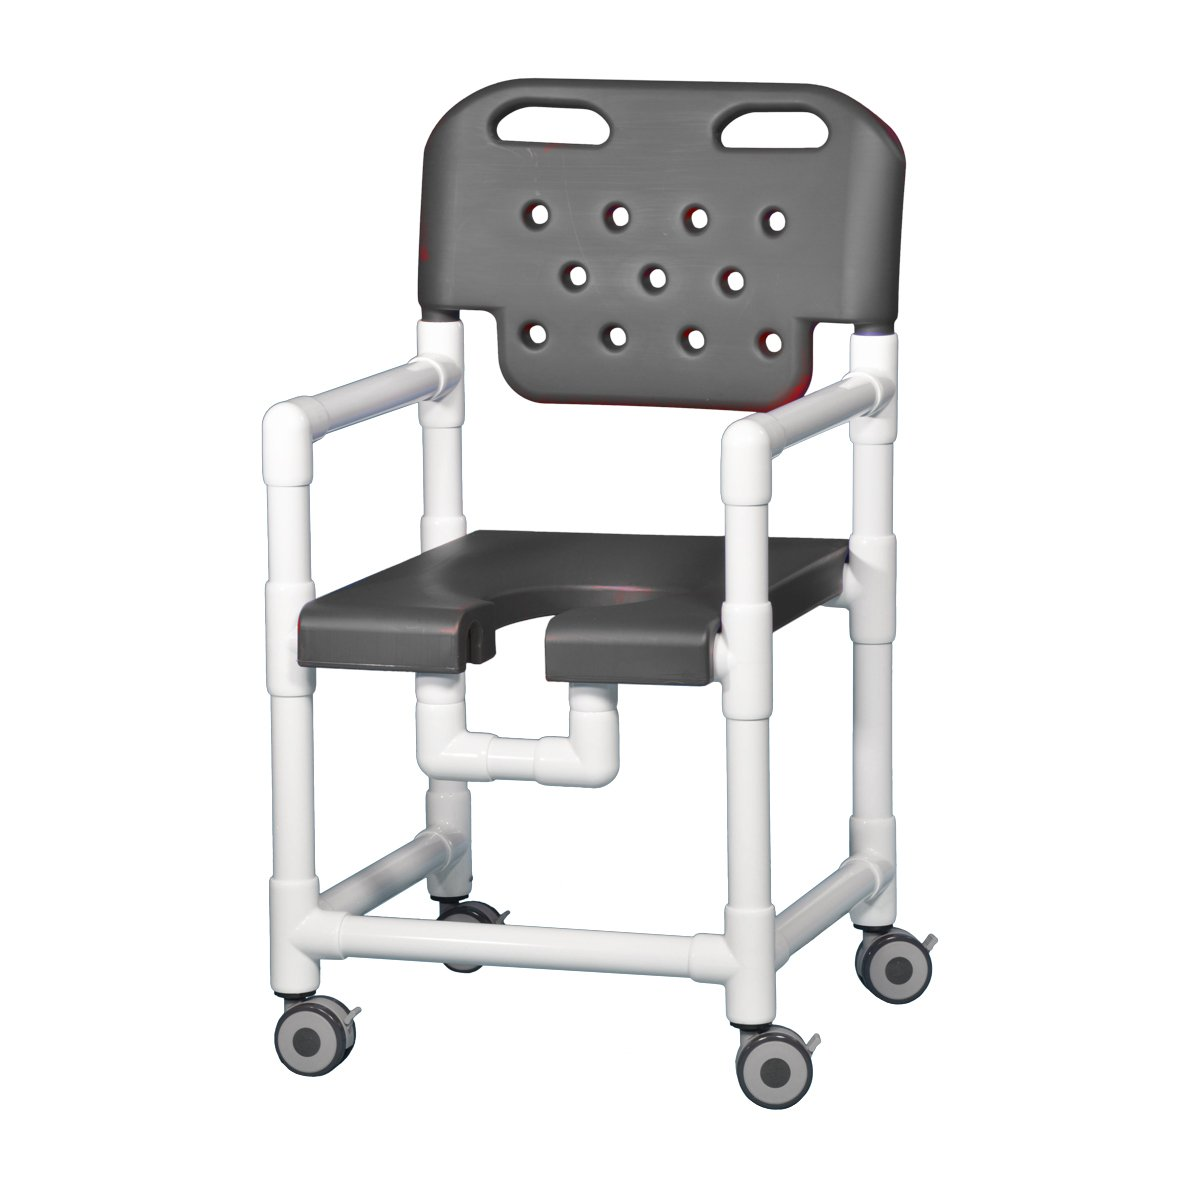 IPU ELT817 Elite Rolling Shower Chair for use over Toilet and in the Shower